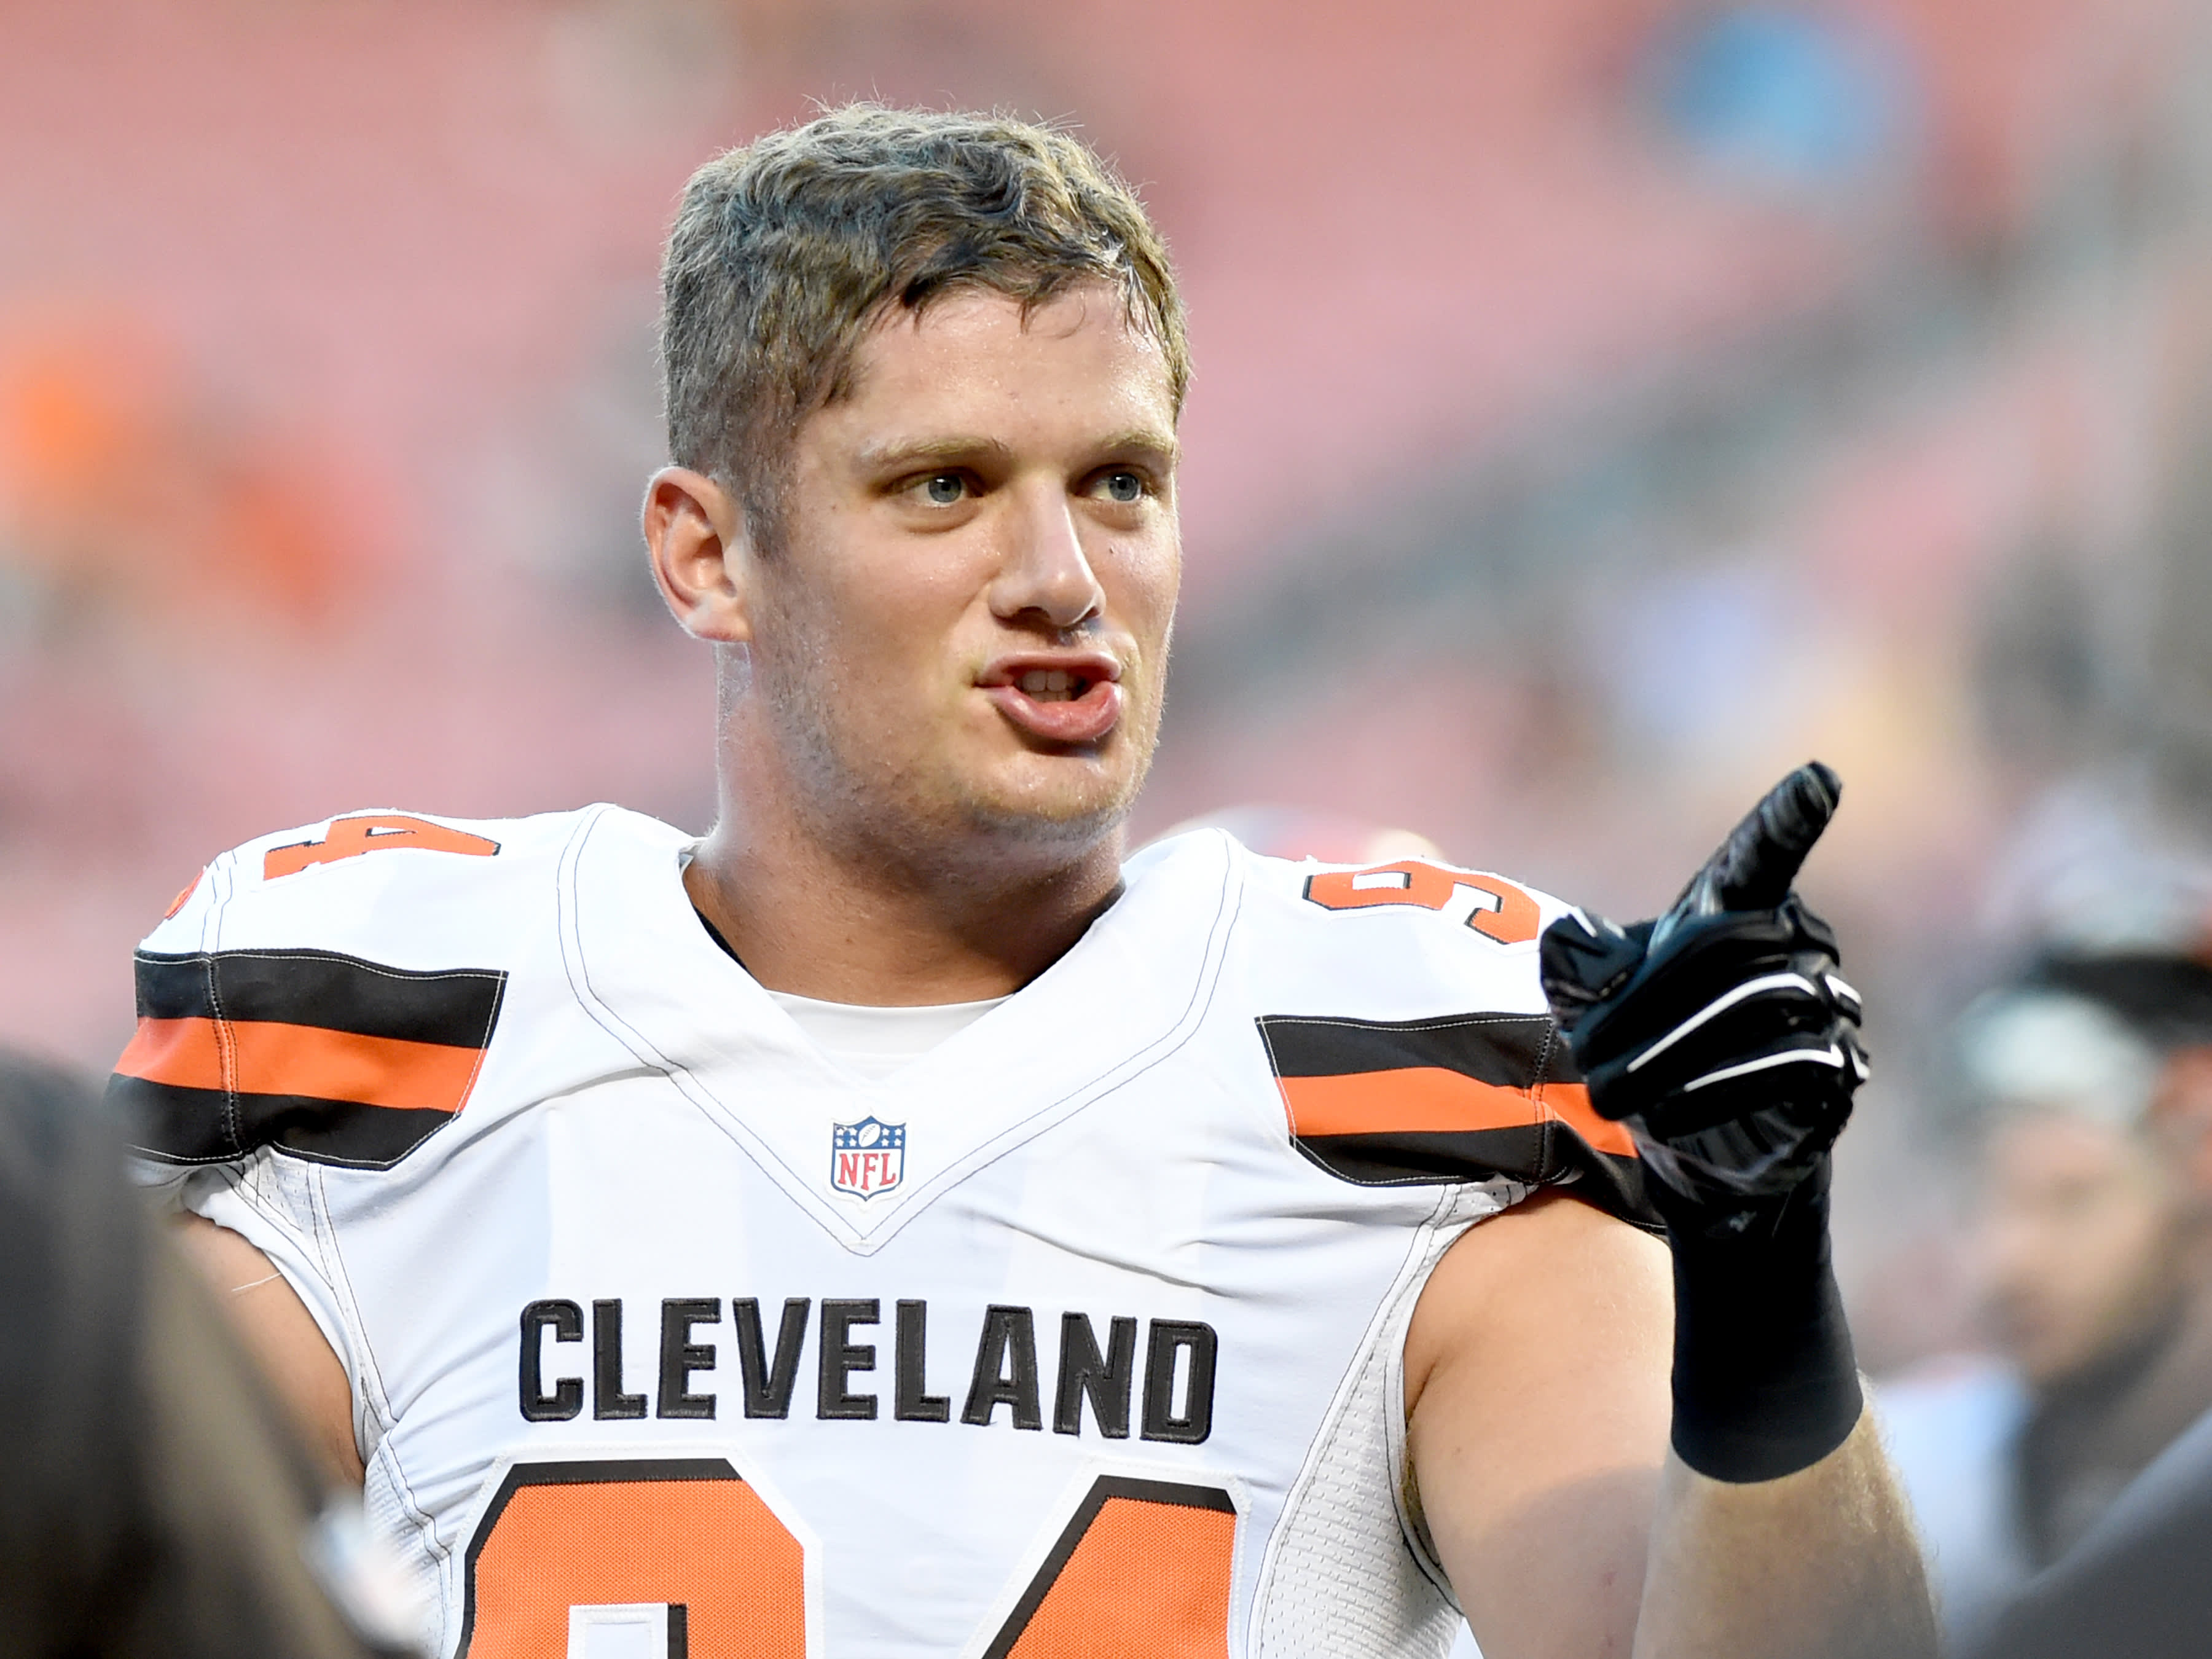 NFL player Carl Nassib makes millions but sticks to a $3,500 budget for rent, food and bills